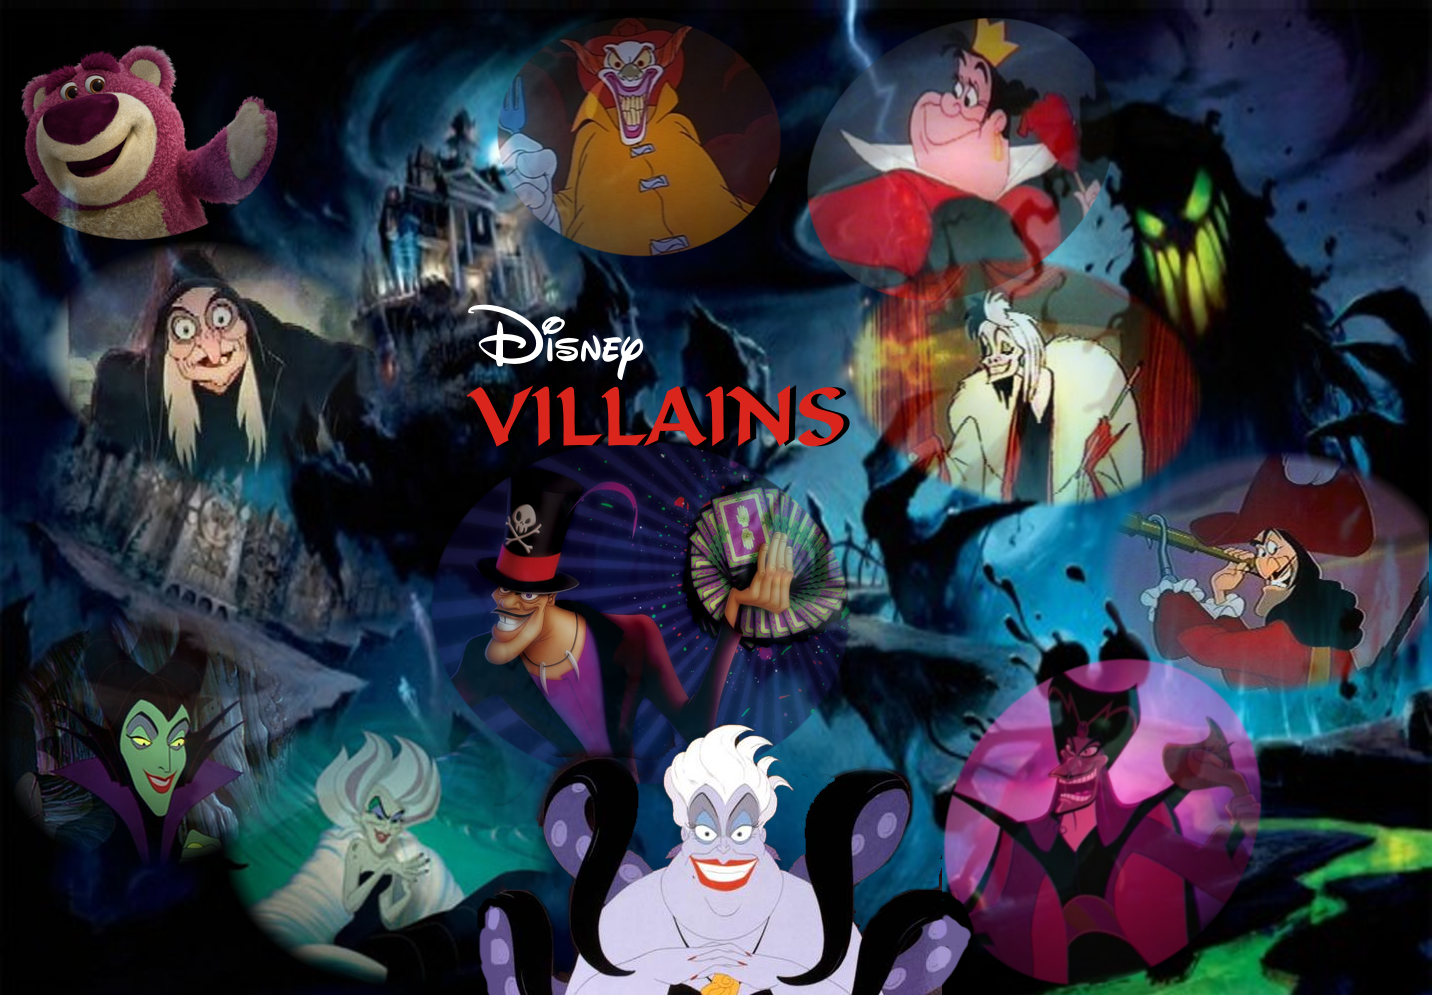 Disney Villains Is A Walt Disney Company Franchise Based On